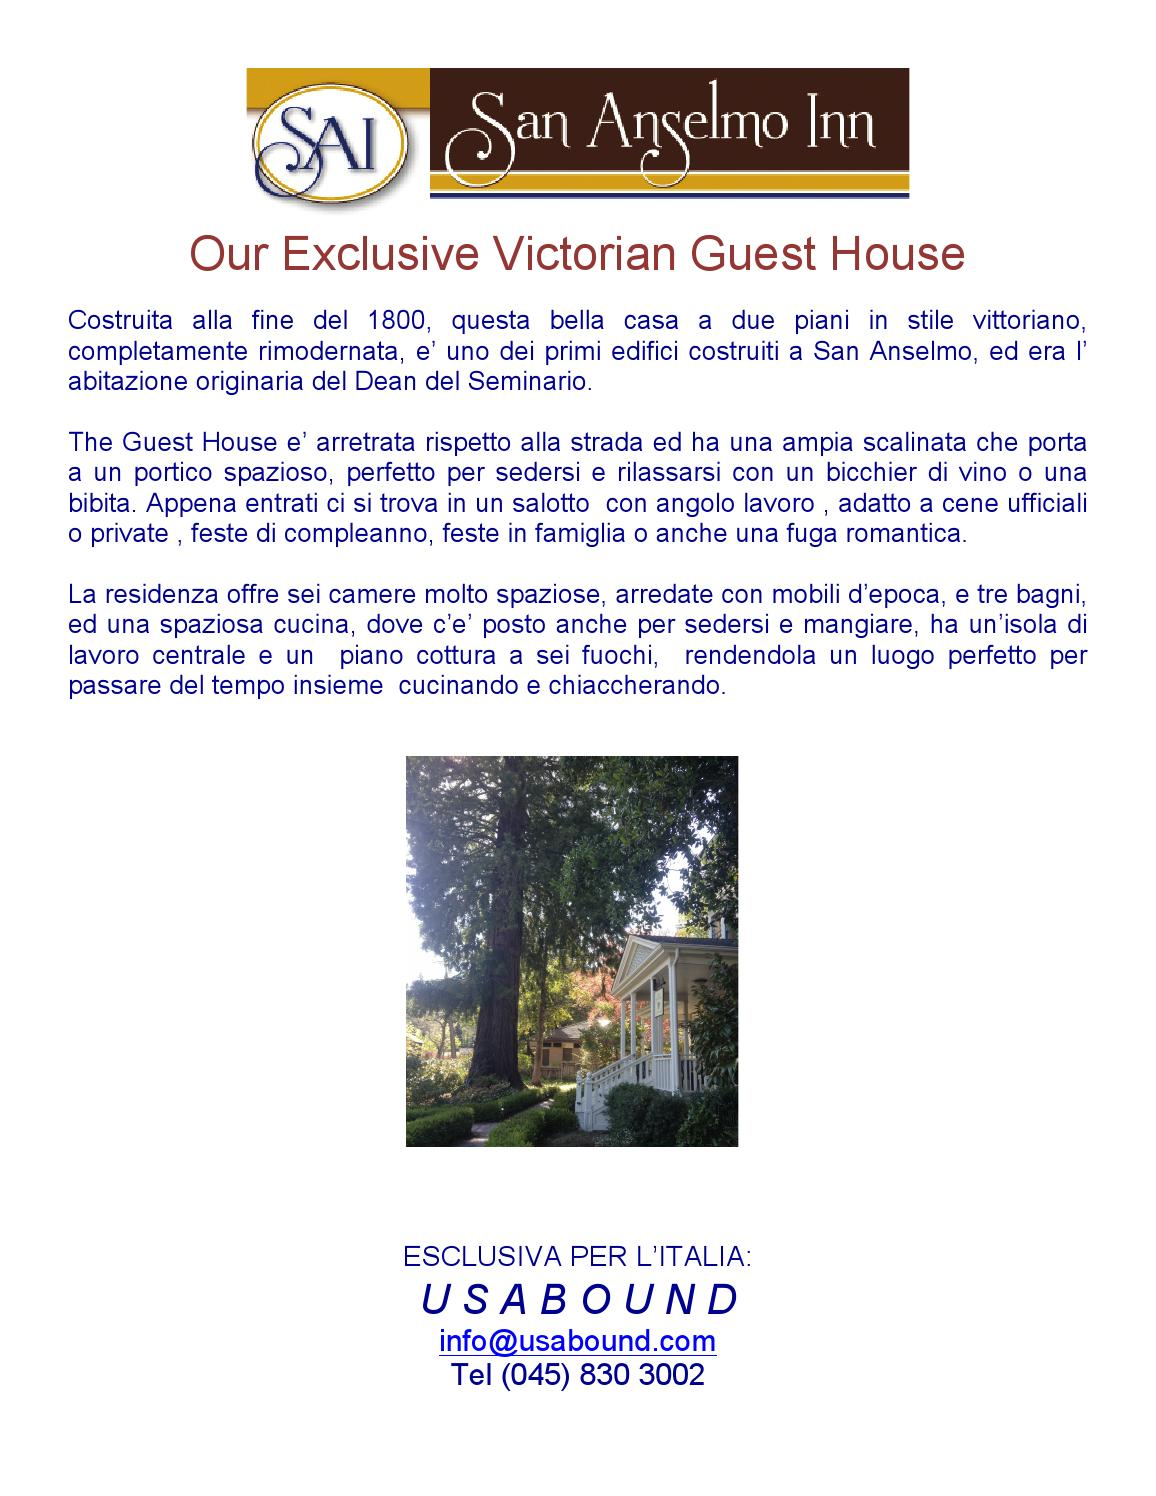 San anselmo guesthouse by usabound issuu for Piani di casa con guest house annessa